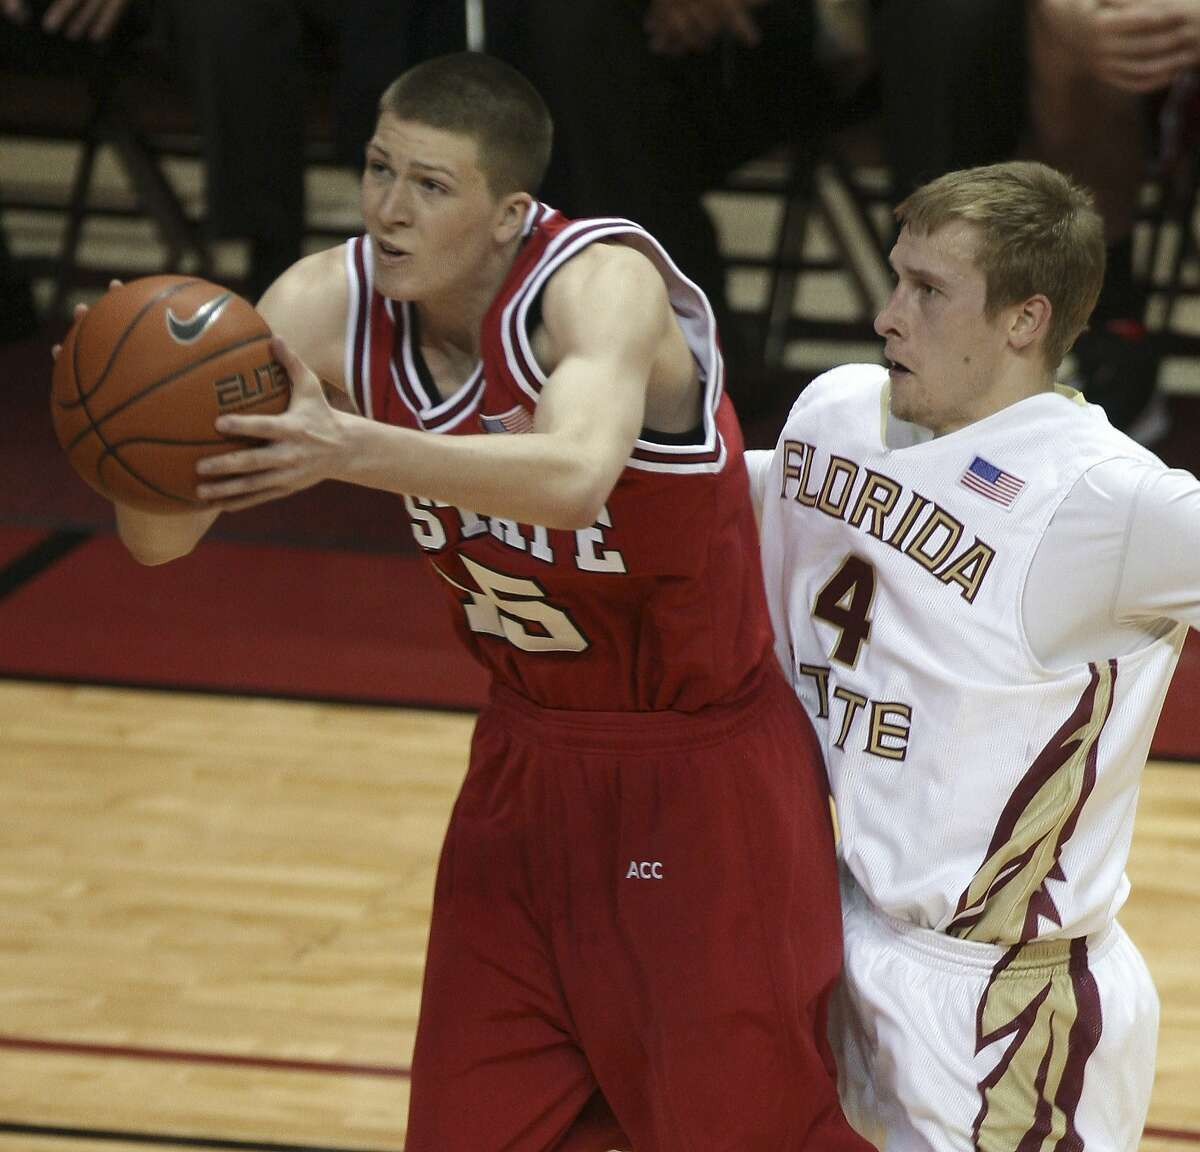 North Carolina State's Scott Wood, left, drives for two second-half points as Florida State's Deividas Dulkys defends during an NCAA college basketball game Tuesday, Jan. 12, 2010, in Tallahassee, Fla. North Carolina State won 88-81. (AP Photo/Phil Coale)